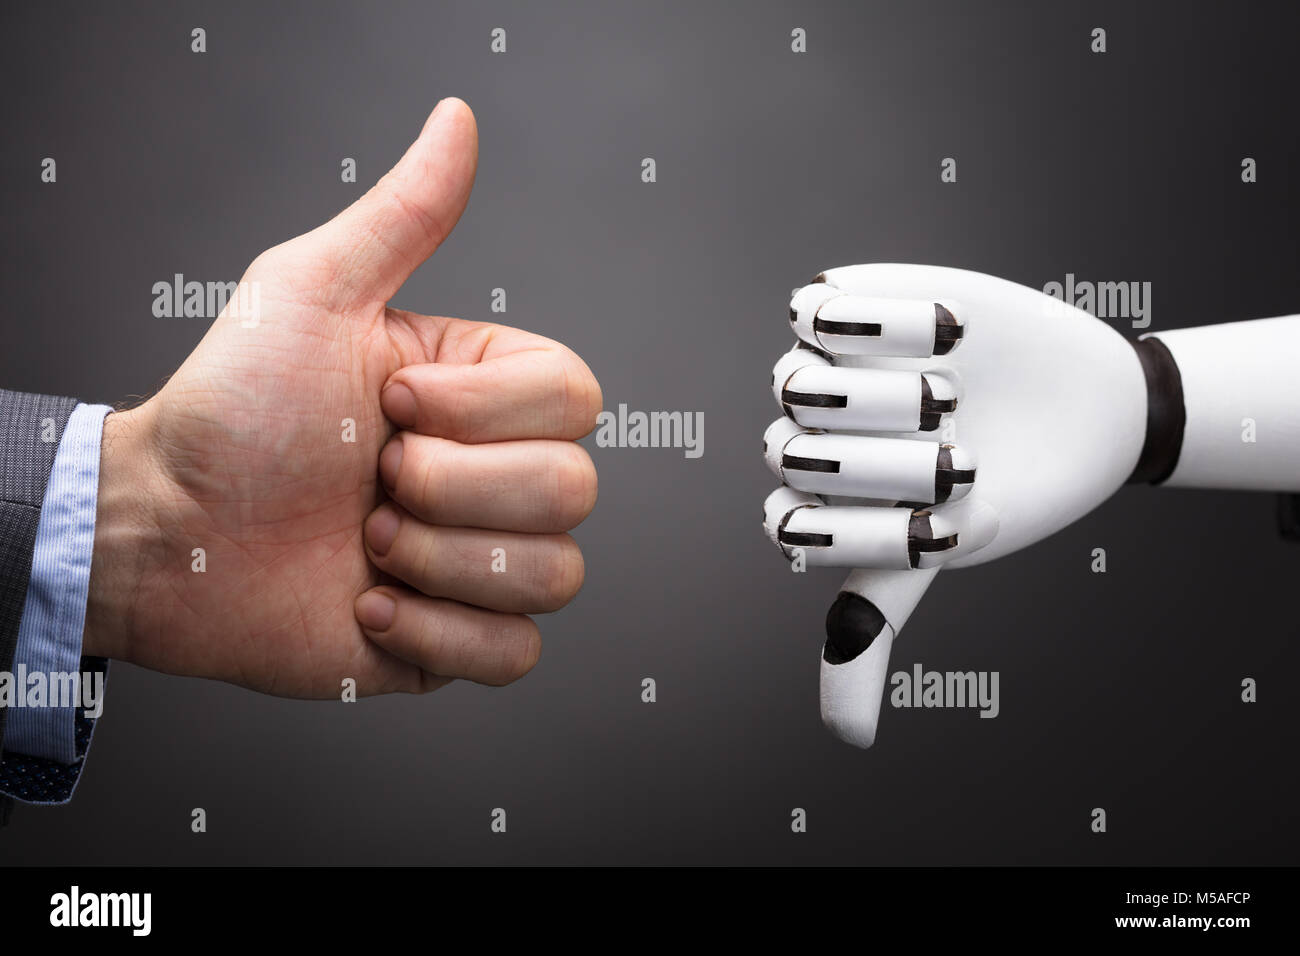 Businessperson And Robot Showing Thumb Up And Thumb Down Sign On Grey Background - Stock Image